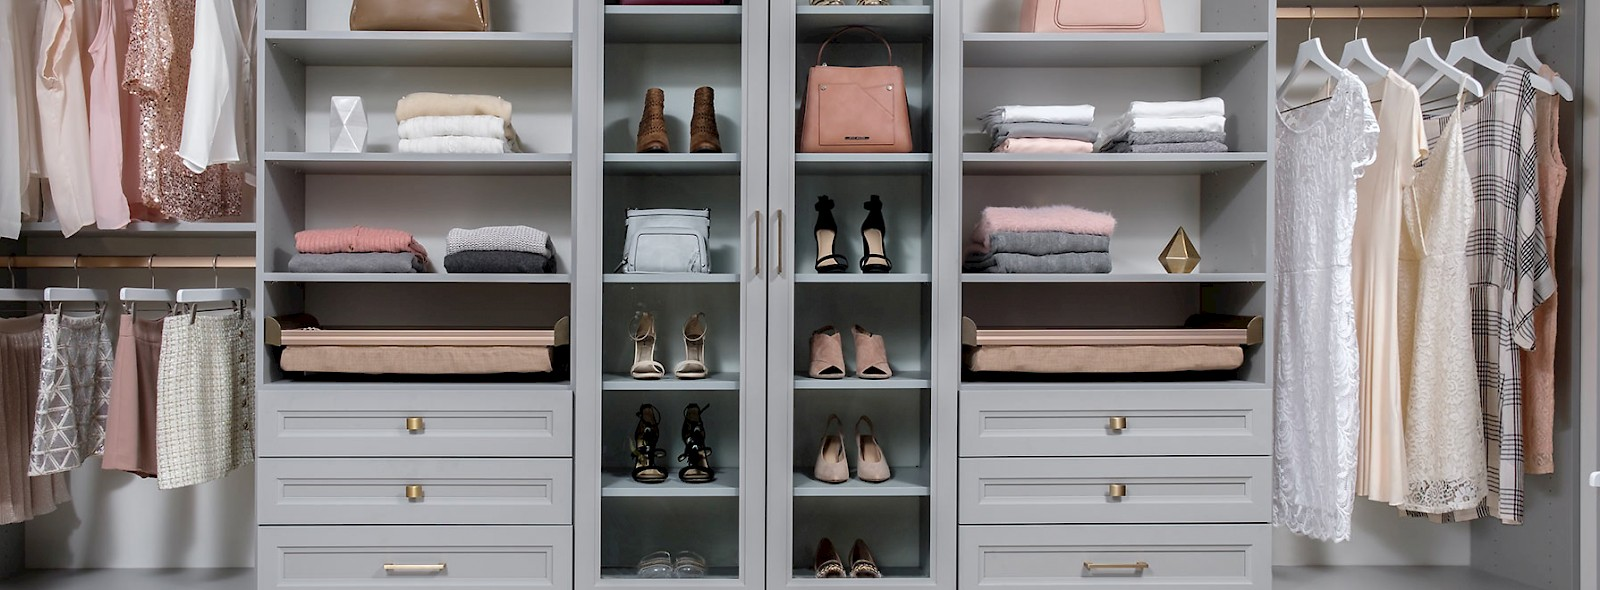 Custom Walk In Closet